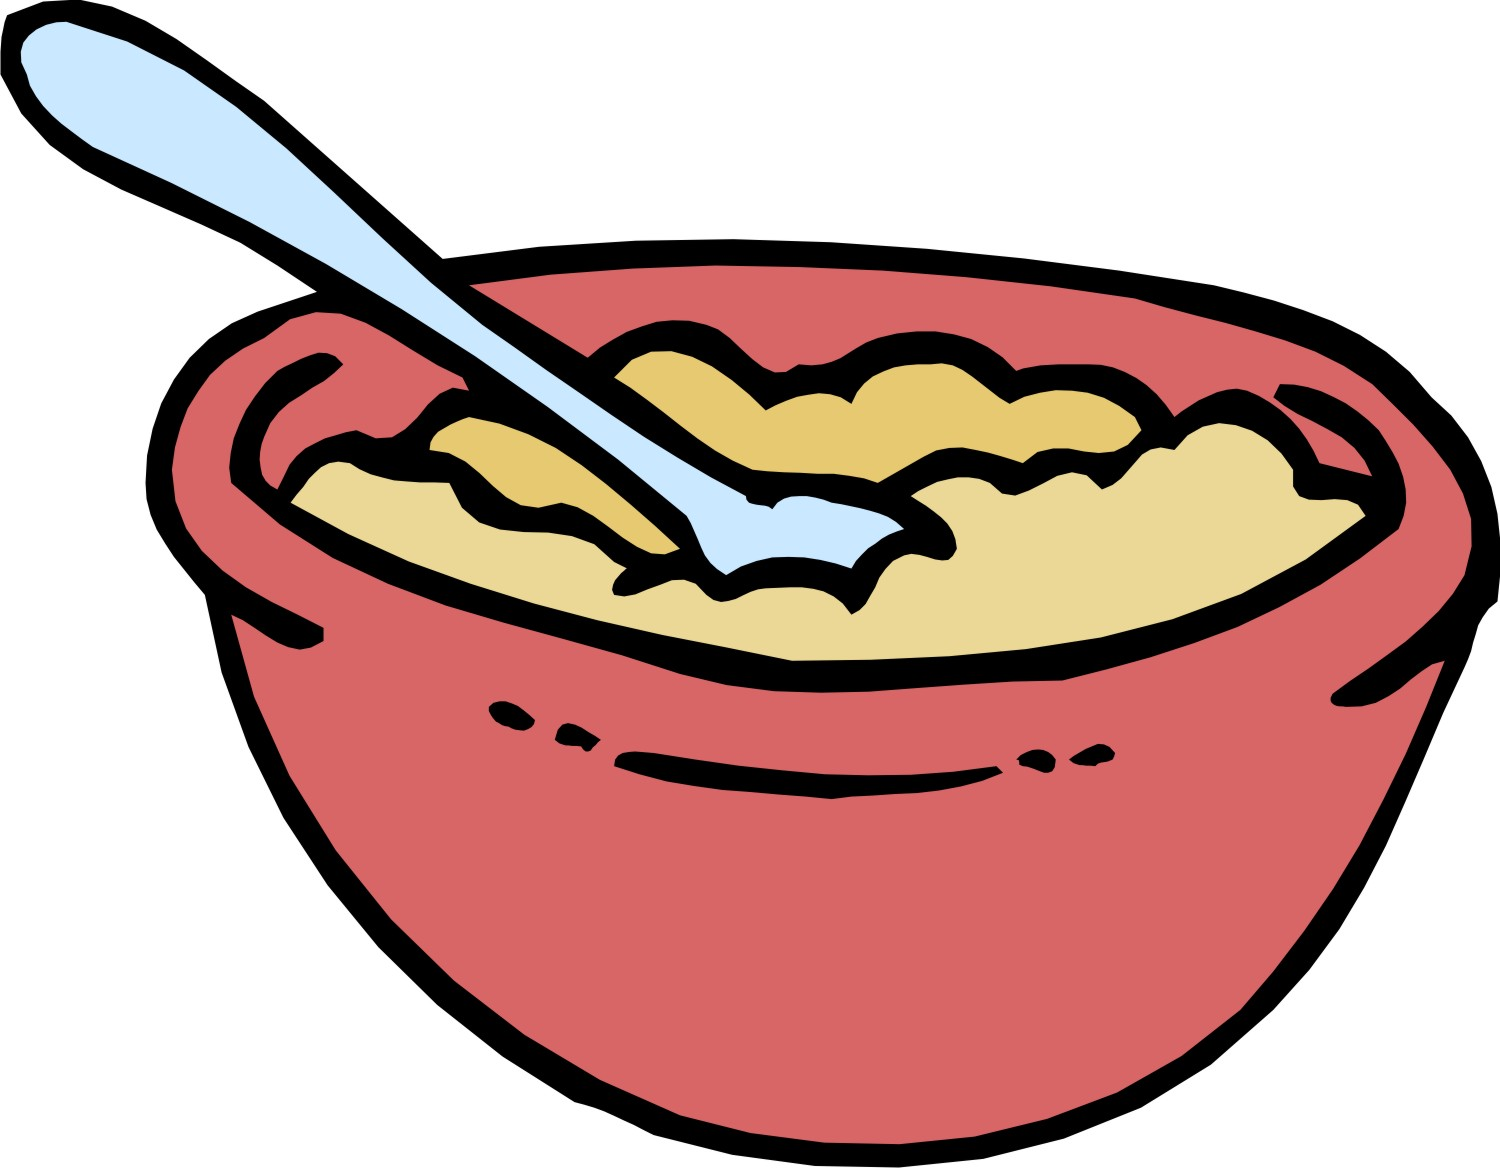 Mixing Spoon Clip Art Oatmeal Clipart Cholesterol